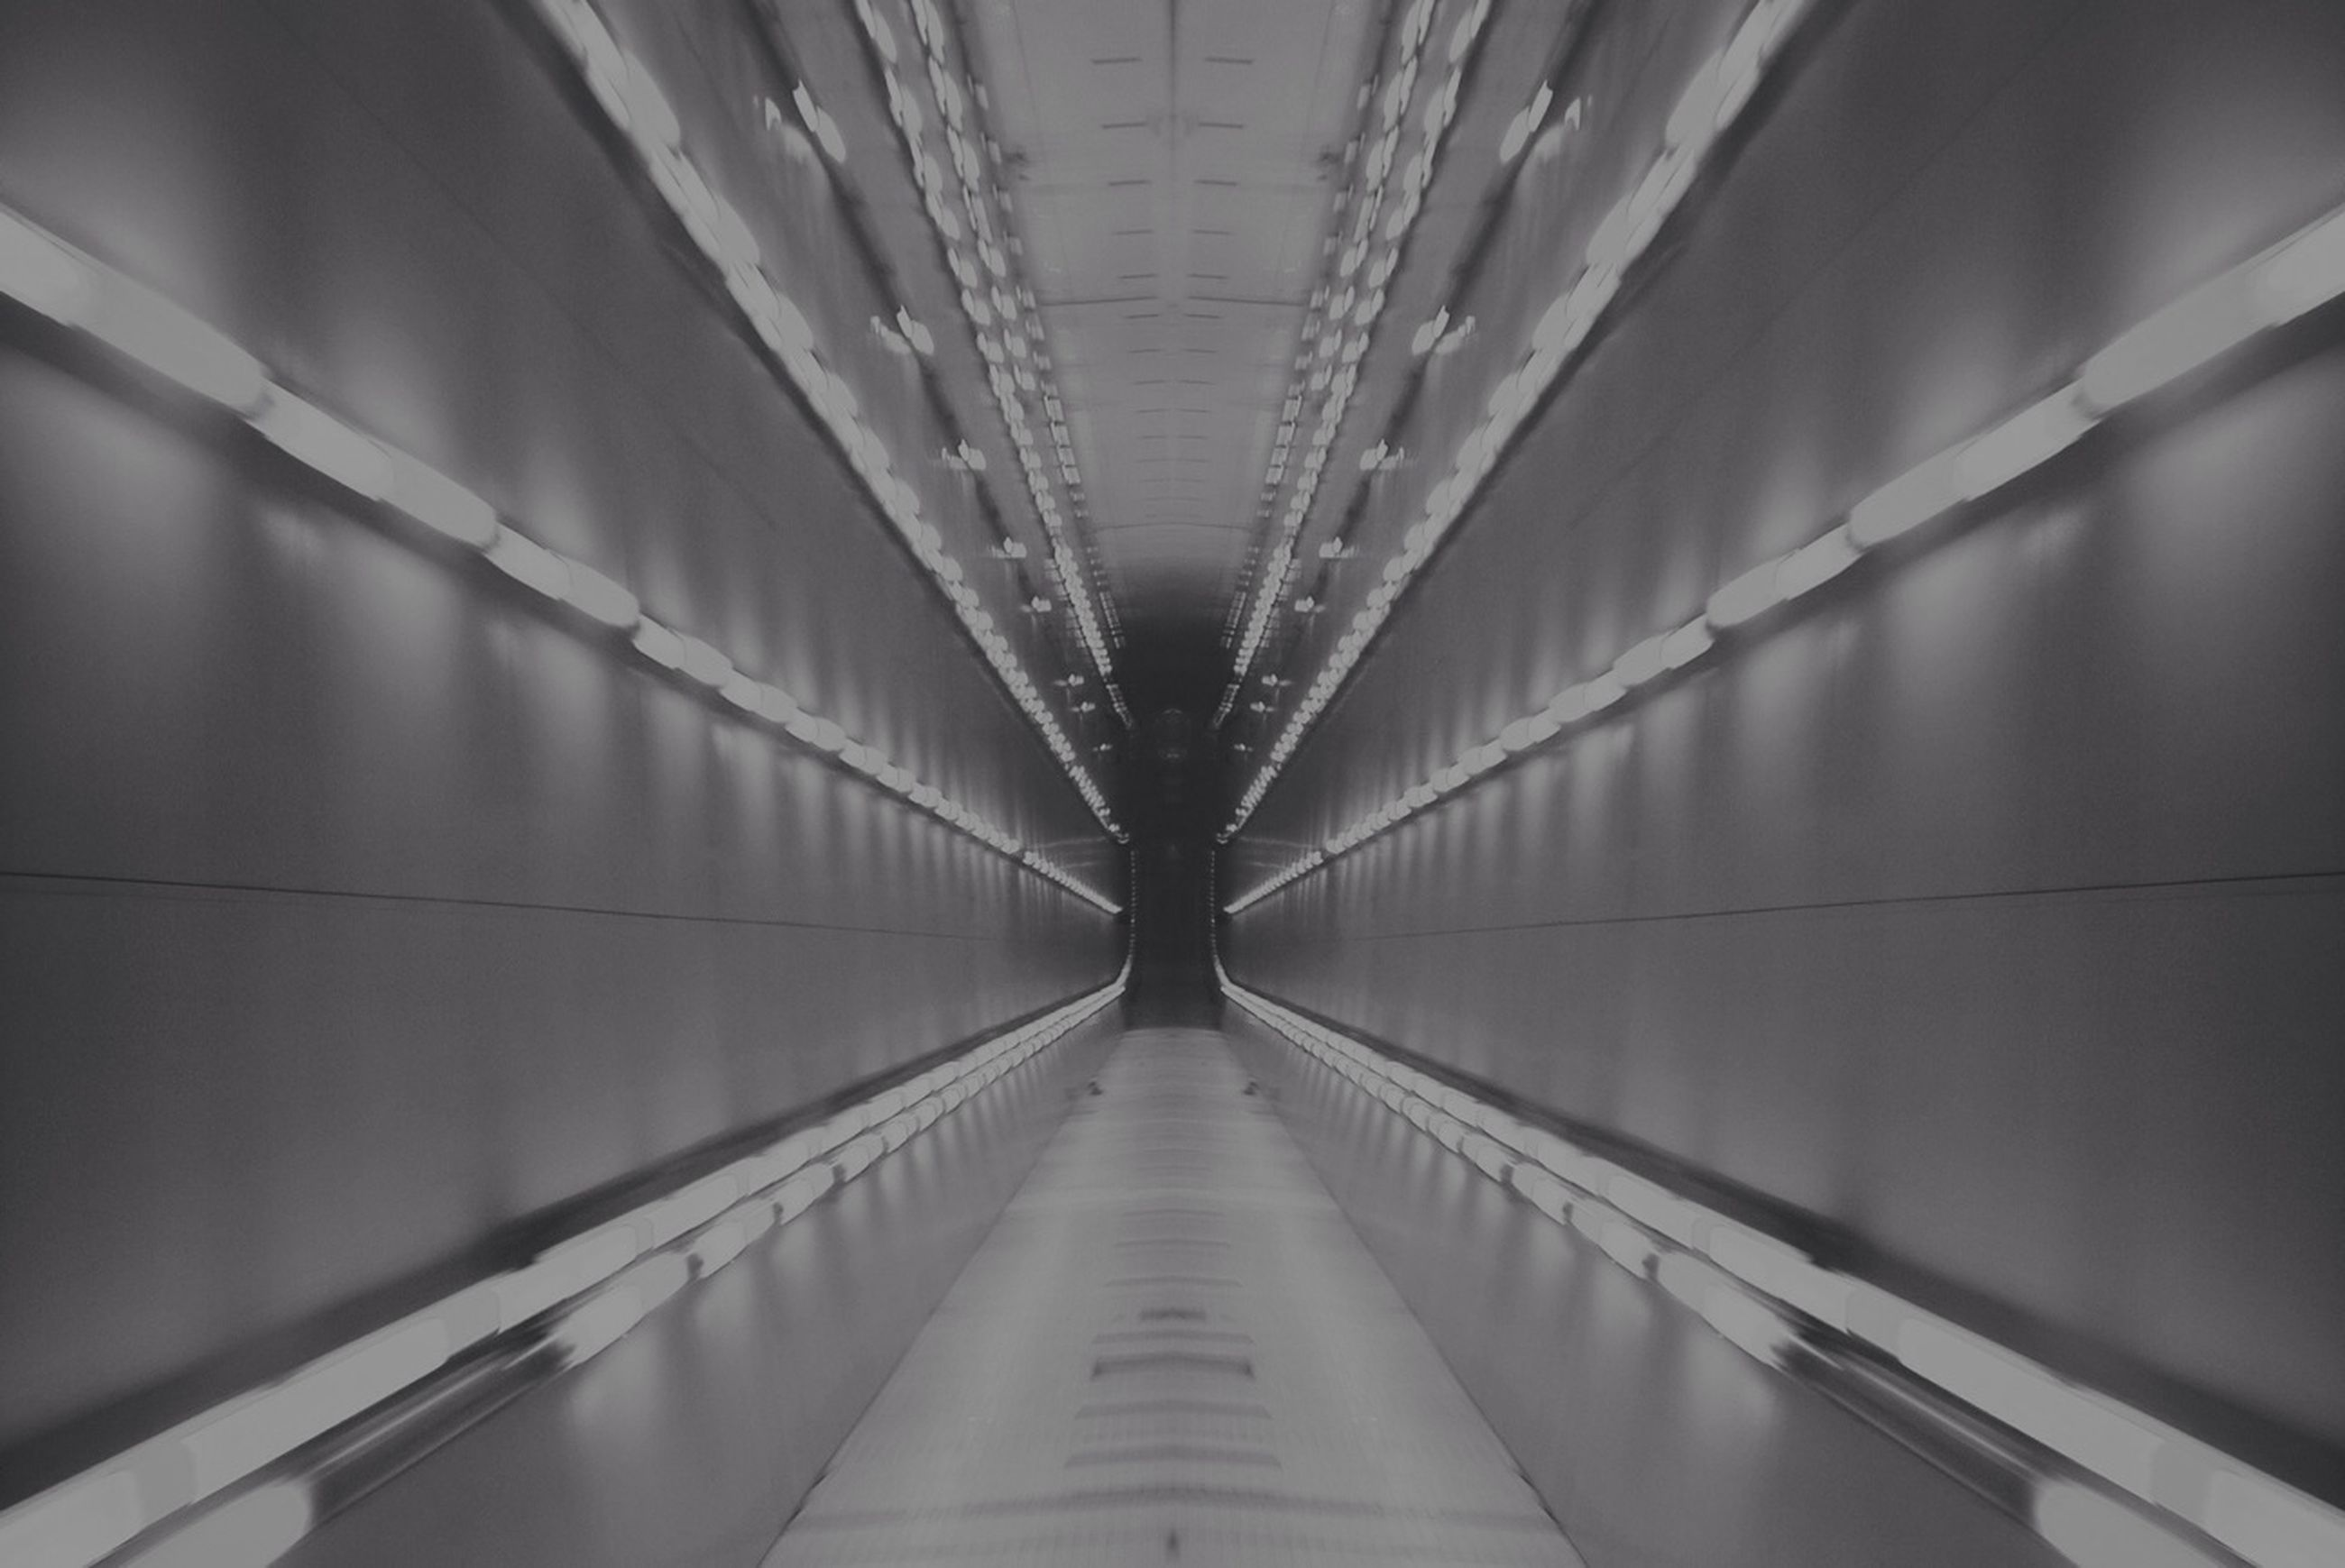 indoors, ceiling, architecture, built structure, diminishing perspective, the way forward, lighting equipment, low angle view, illuminated, pattern, building, vanishing point, wall - building feature, in a row, no people, corridor, modern, directly below, hanging, railing